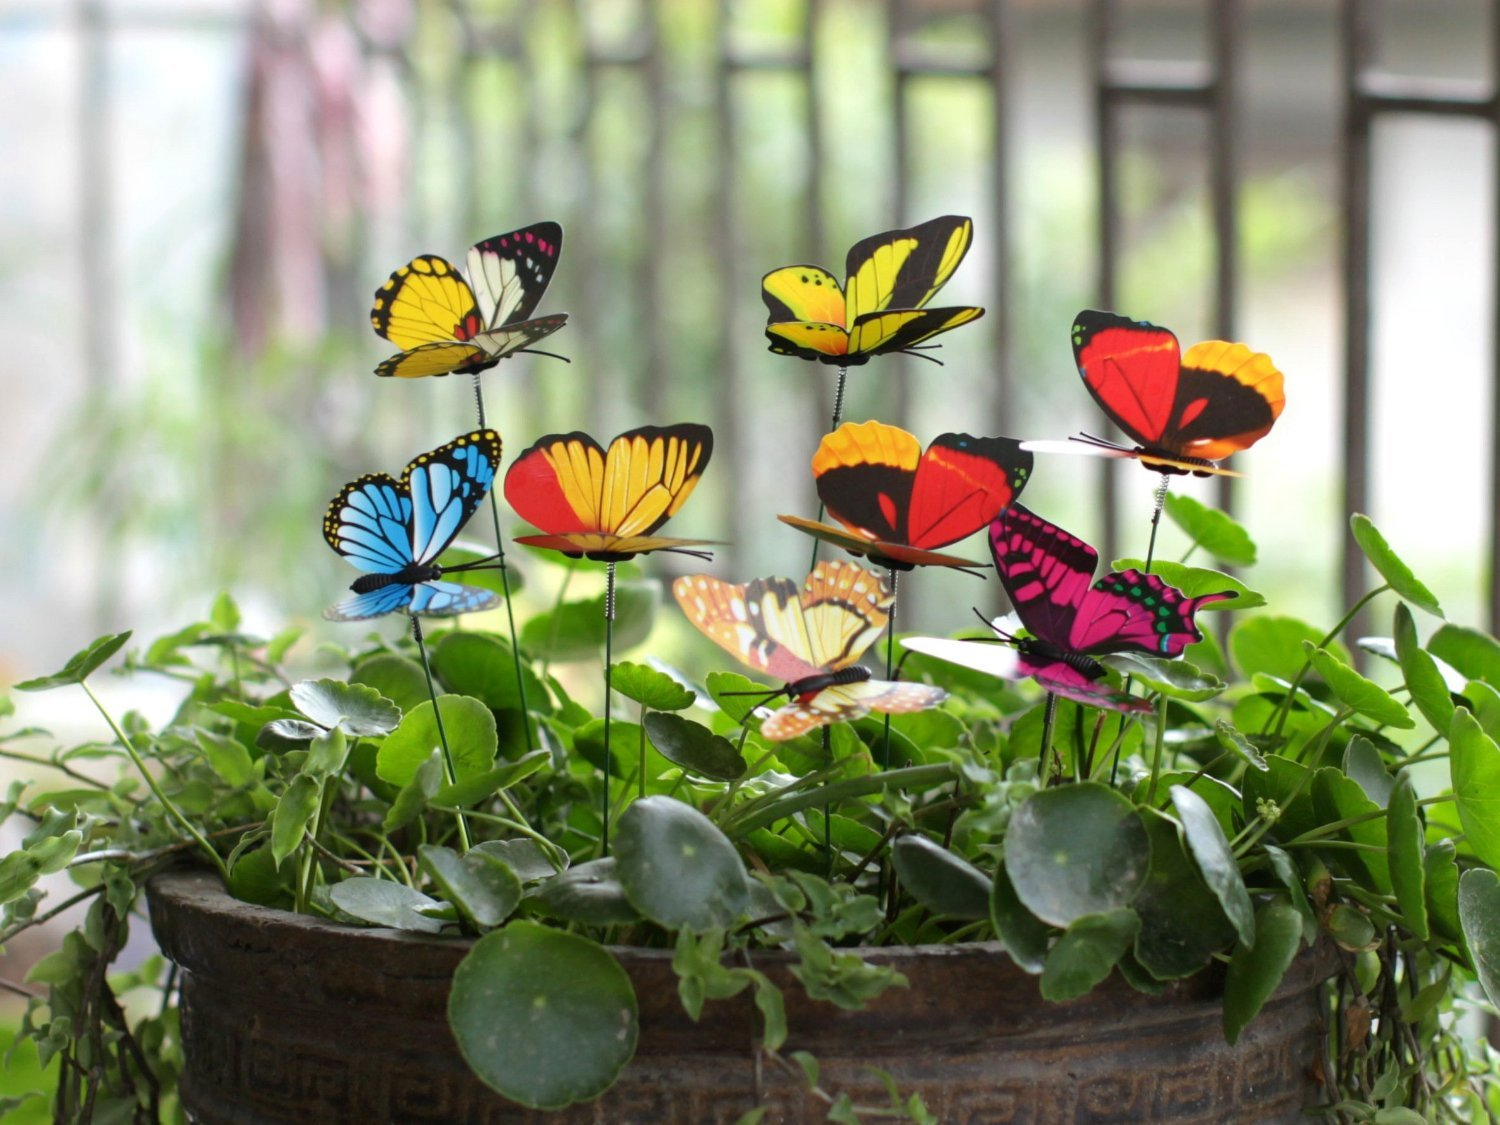 "Ginsco 25pcs Butterfly Stakes Outdoor Yard Planter Flower Pot Bed Garden Decor Butterflies Christmas Tree Decorations 1 Ships from US. 25pcs, Color sent in Random,some may be the same. Each approx. 10-1/4"" x 2-3/4"" x 2-1/4"" The wings can be pushed open or shut for varied display."